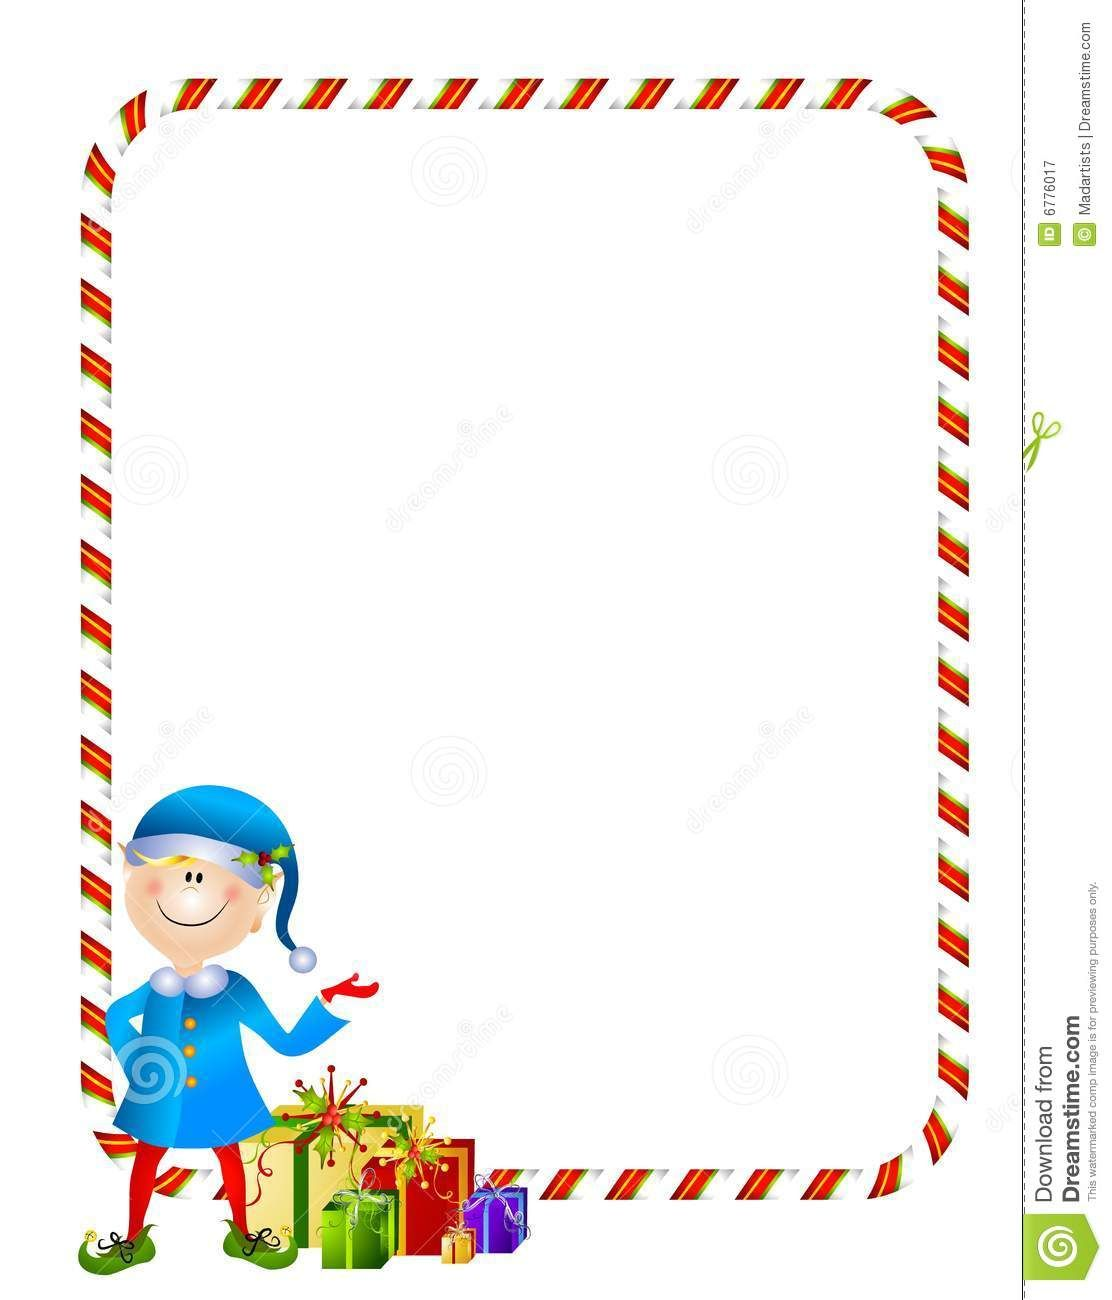 Christmas Elf Border